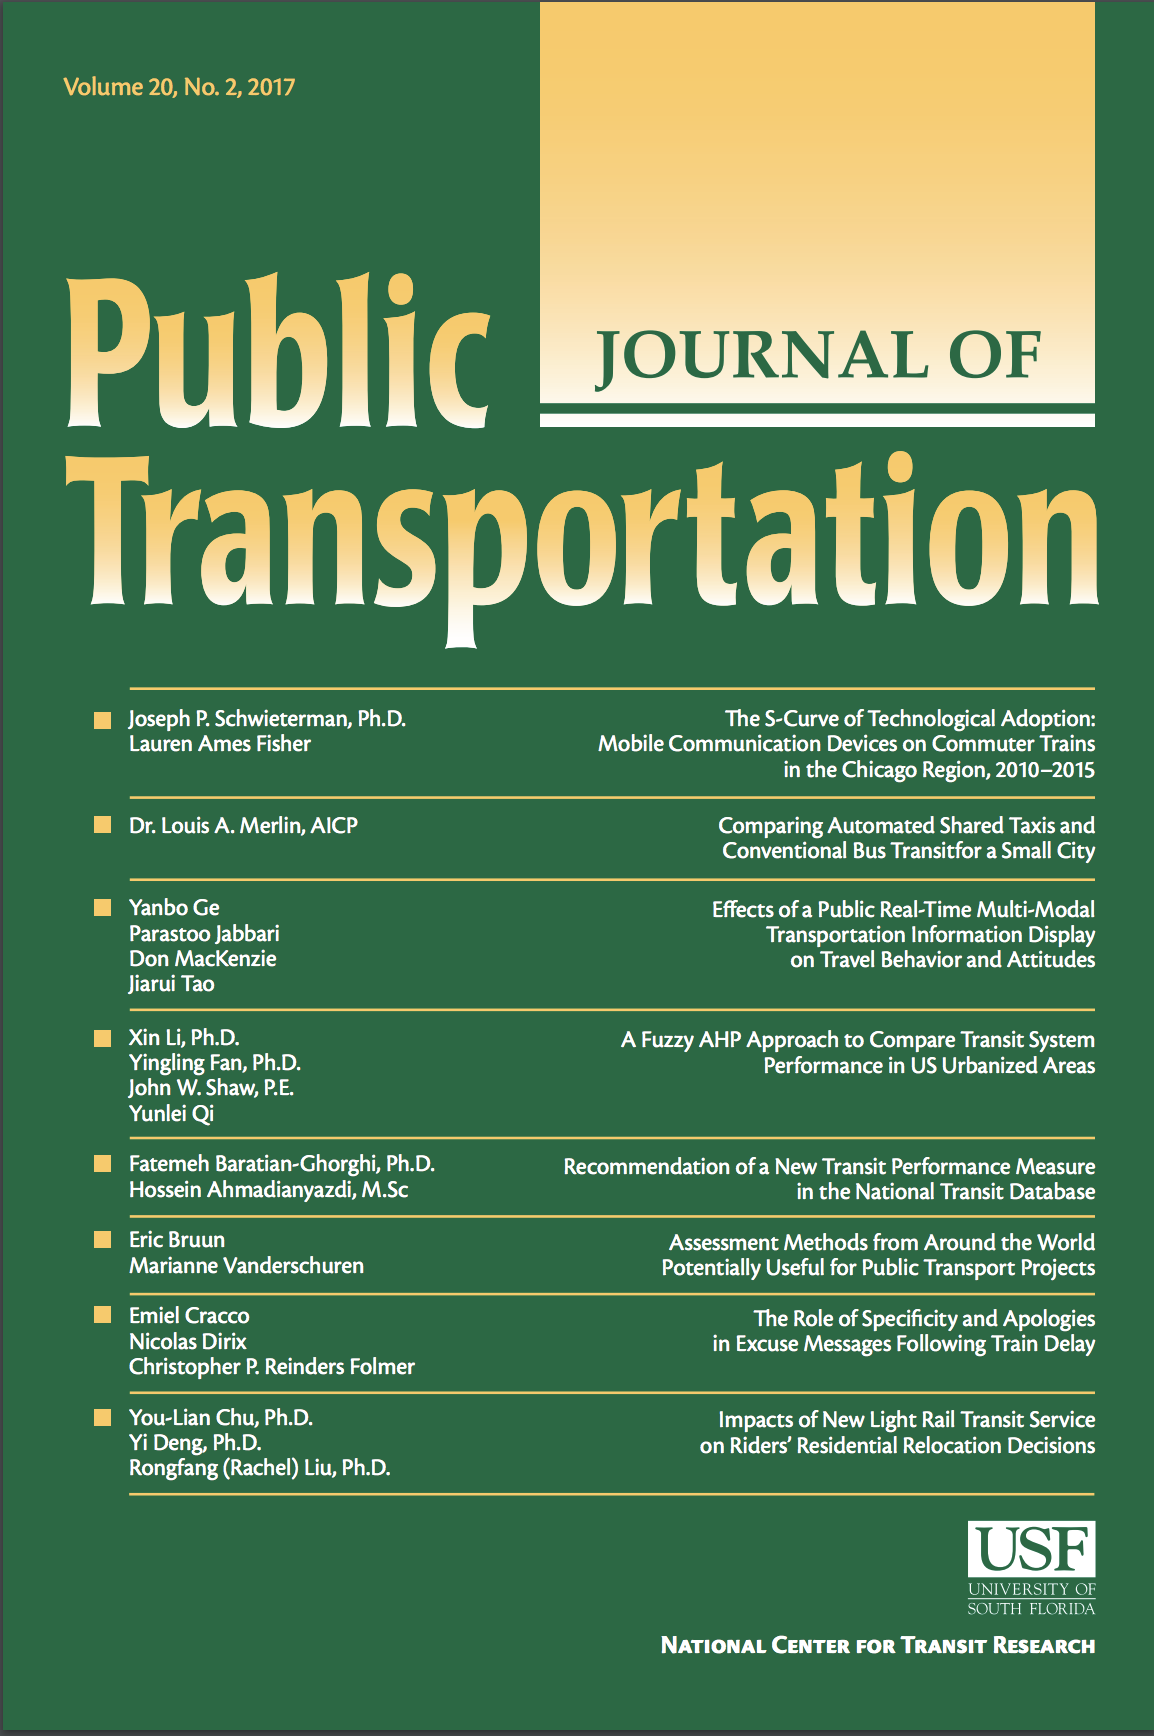 Cover of the Journal of Public Transportation